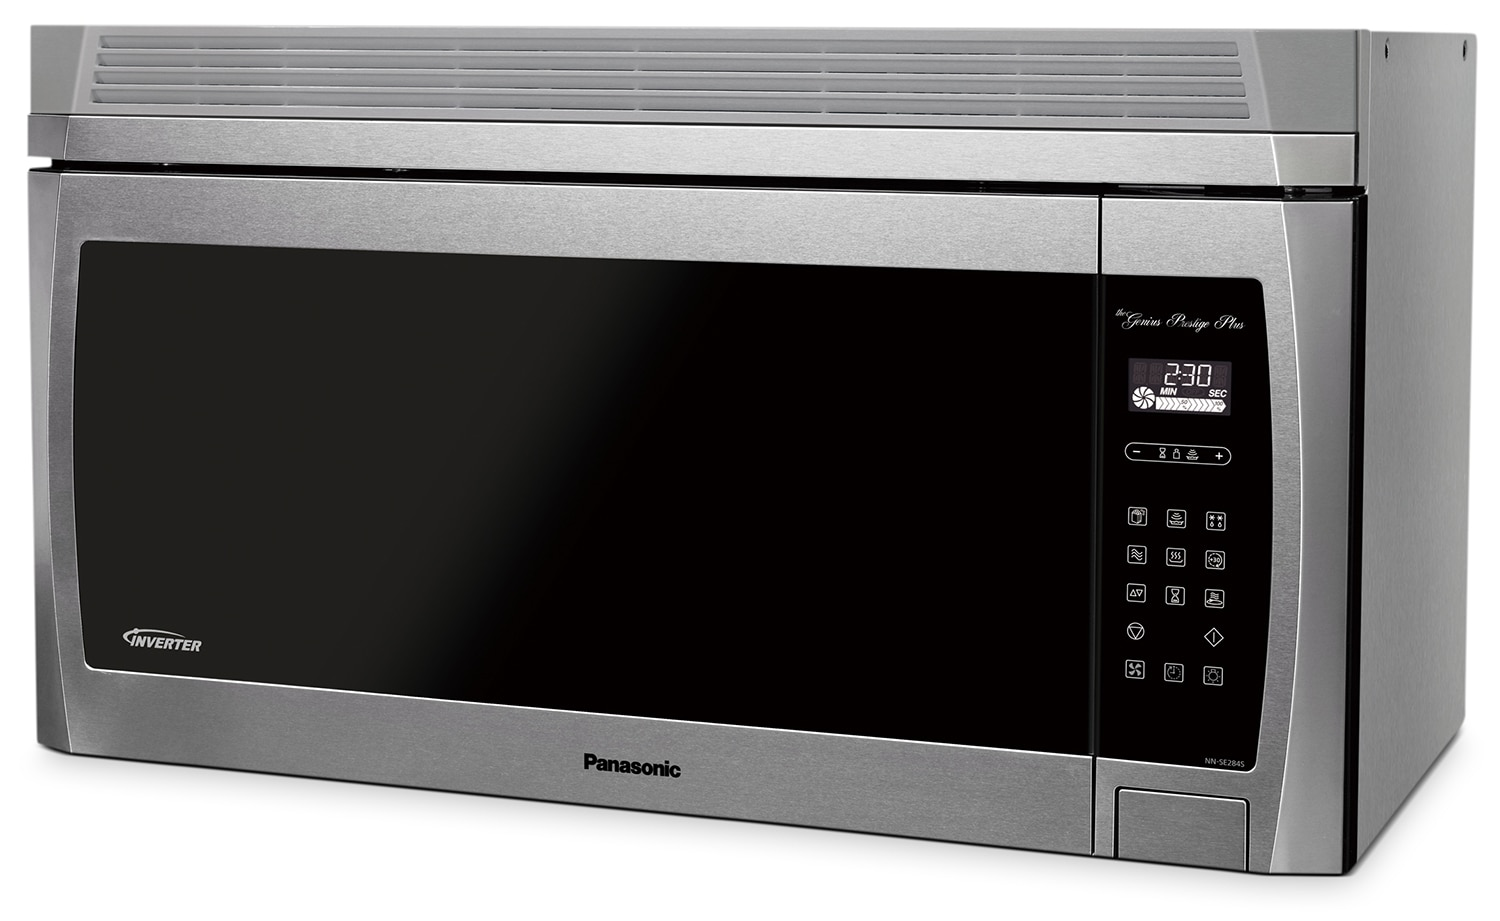 Cooking Products - Panasonic® 2.0 Cu. Ft. Genius® Prestige® Plus Over-the-Range Microwave Oven - Stainless Steel